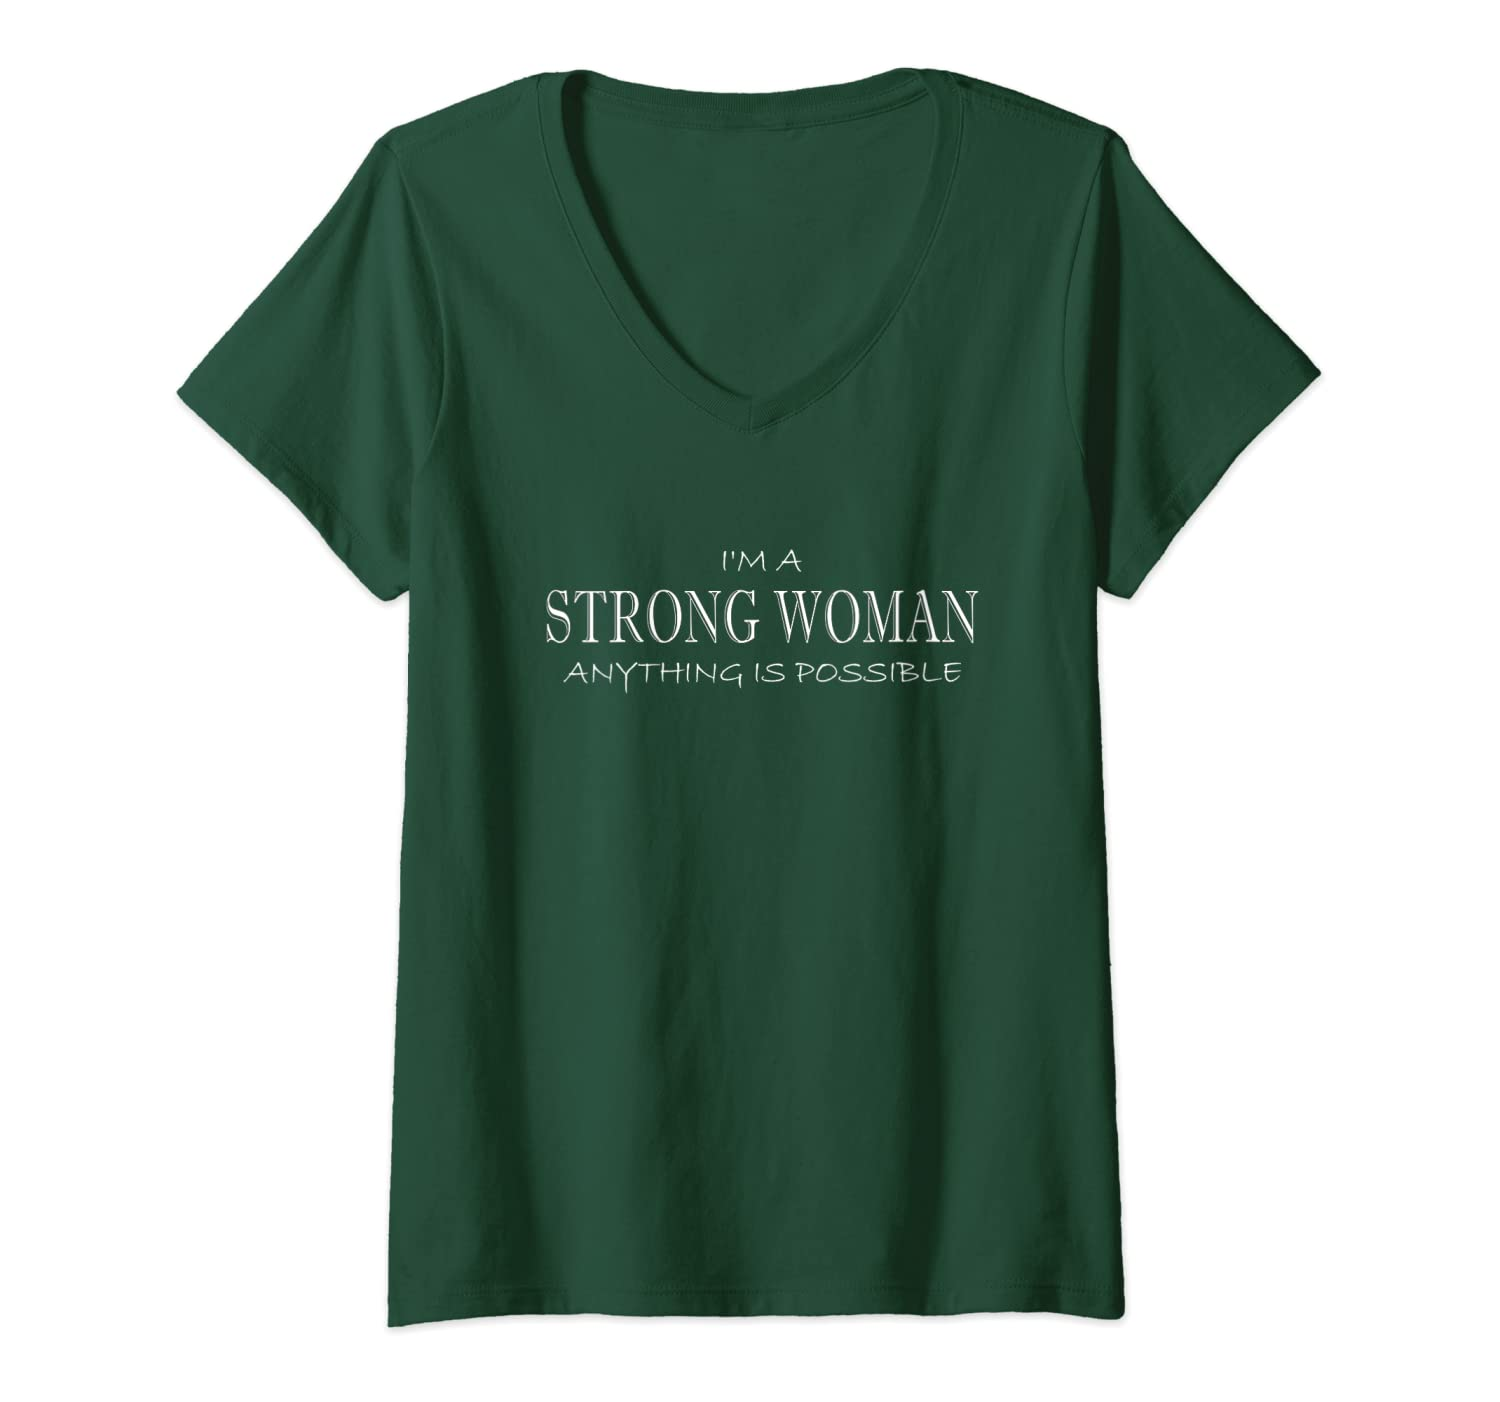 STRONG WOMAN Anything Is Possible anti sexism oppression Vneck